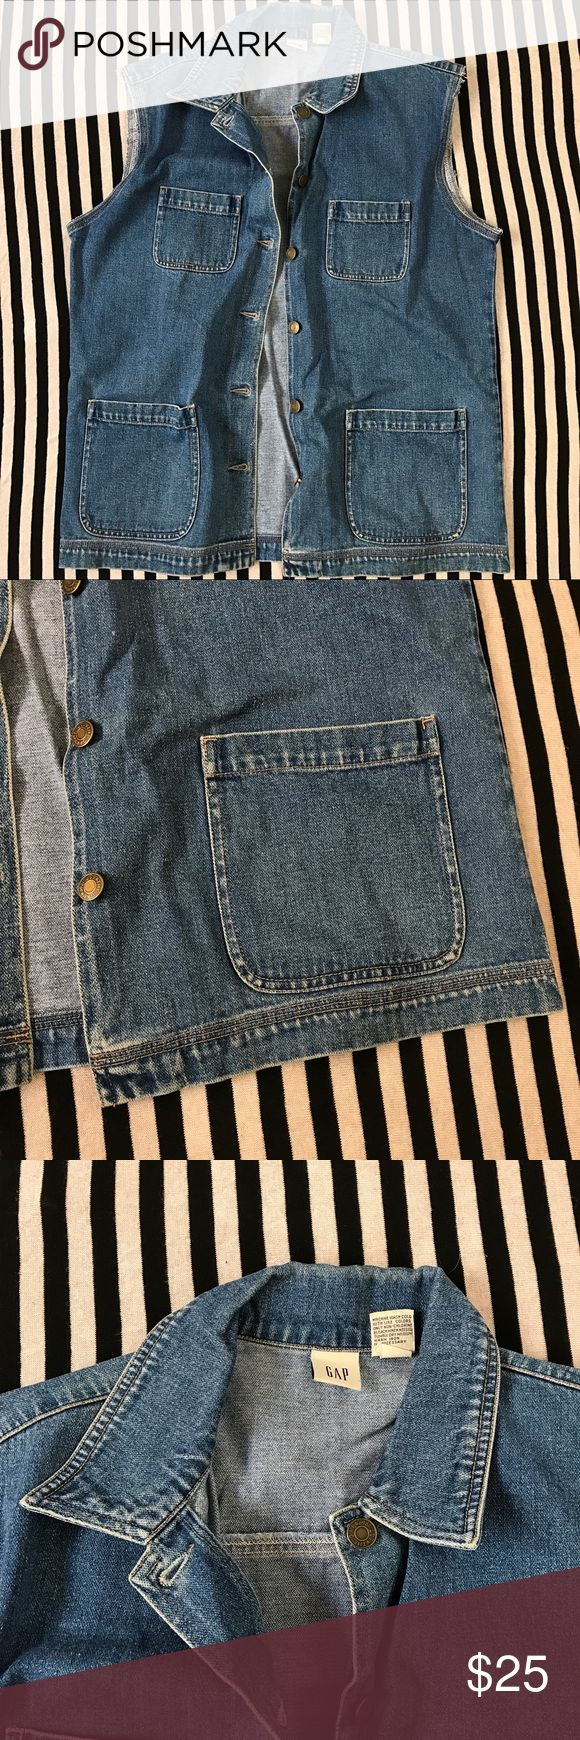 "GAP Denim Blue Sleeveless Jean Jacket Vest Brand : GAP  Size : Medium  Materials : 100% Cotton   Condition : In good vintage condition. No flaws.   Measurements :  Chest = 23.5""  Length = 28.5"" Vintage Jackets & Coats Vests"